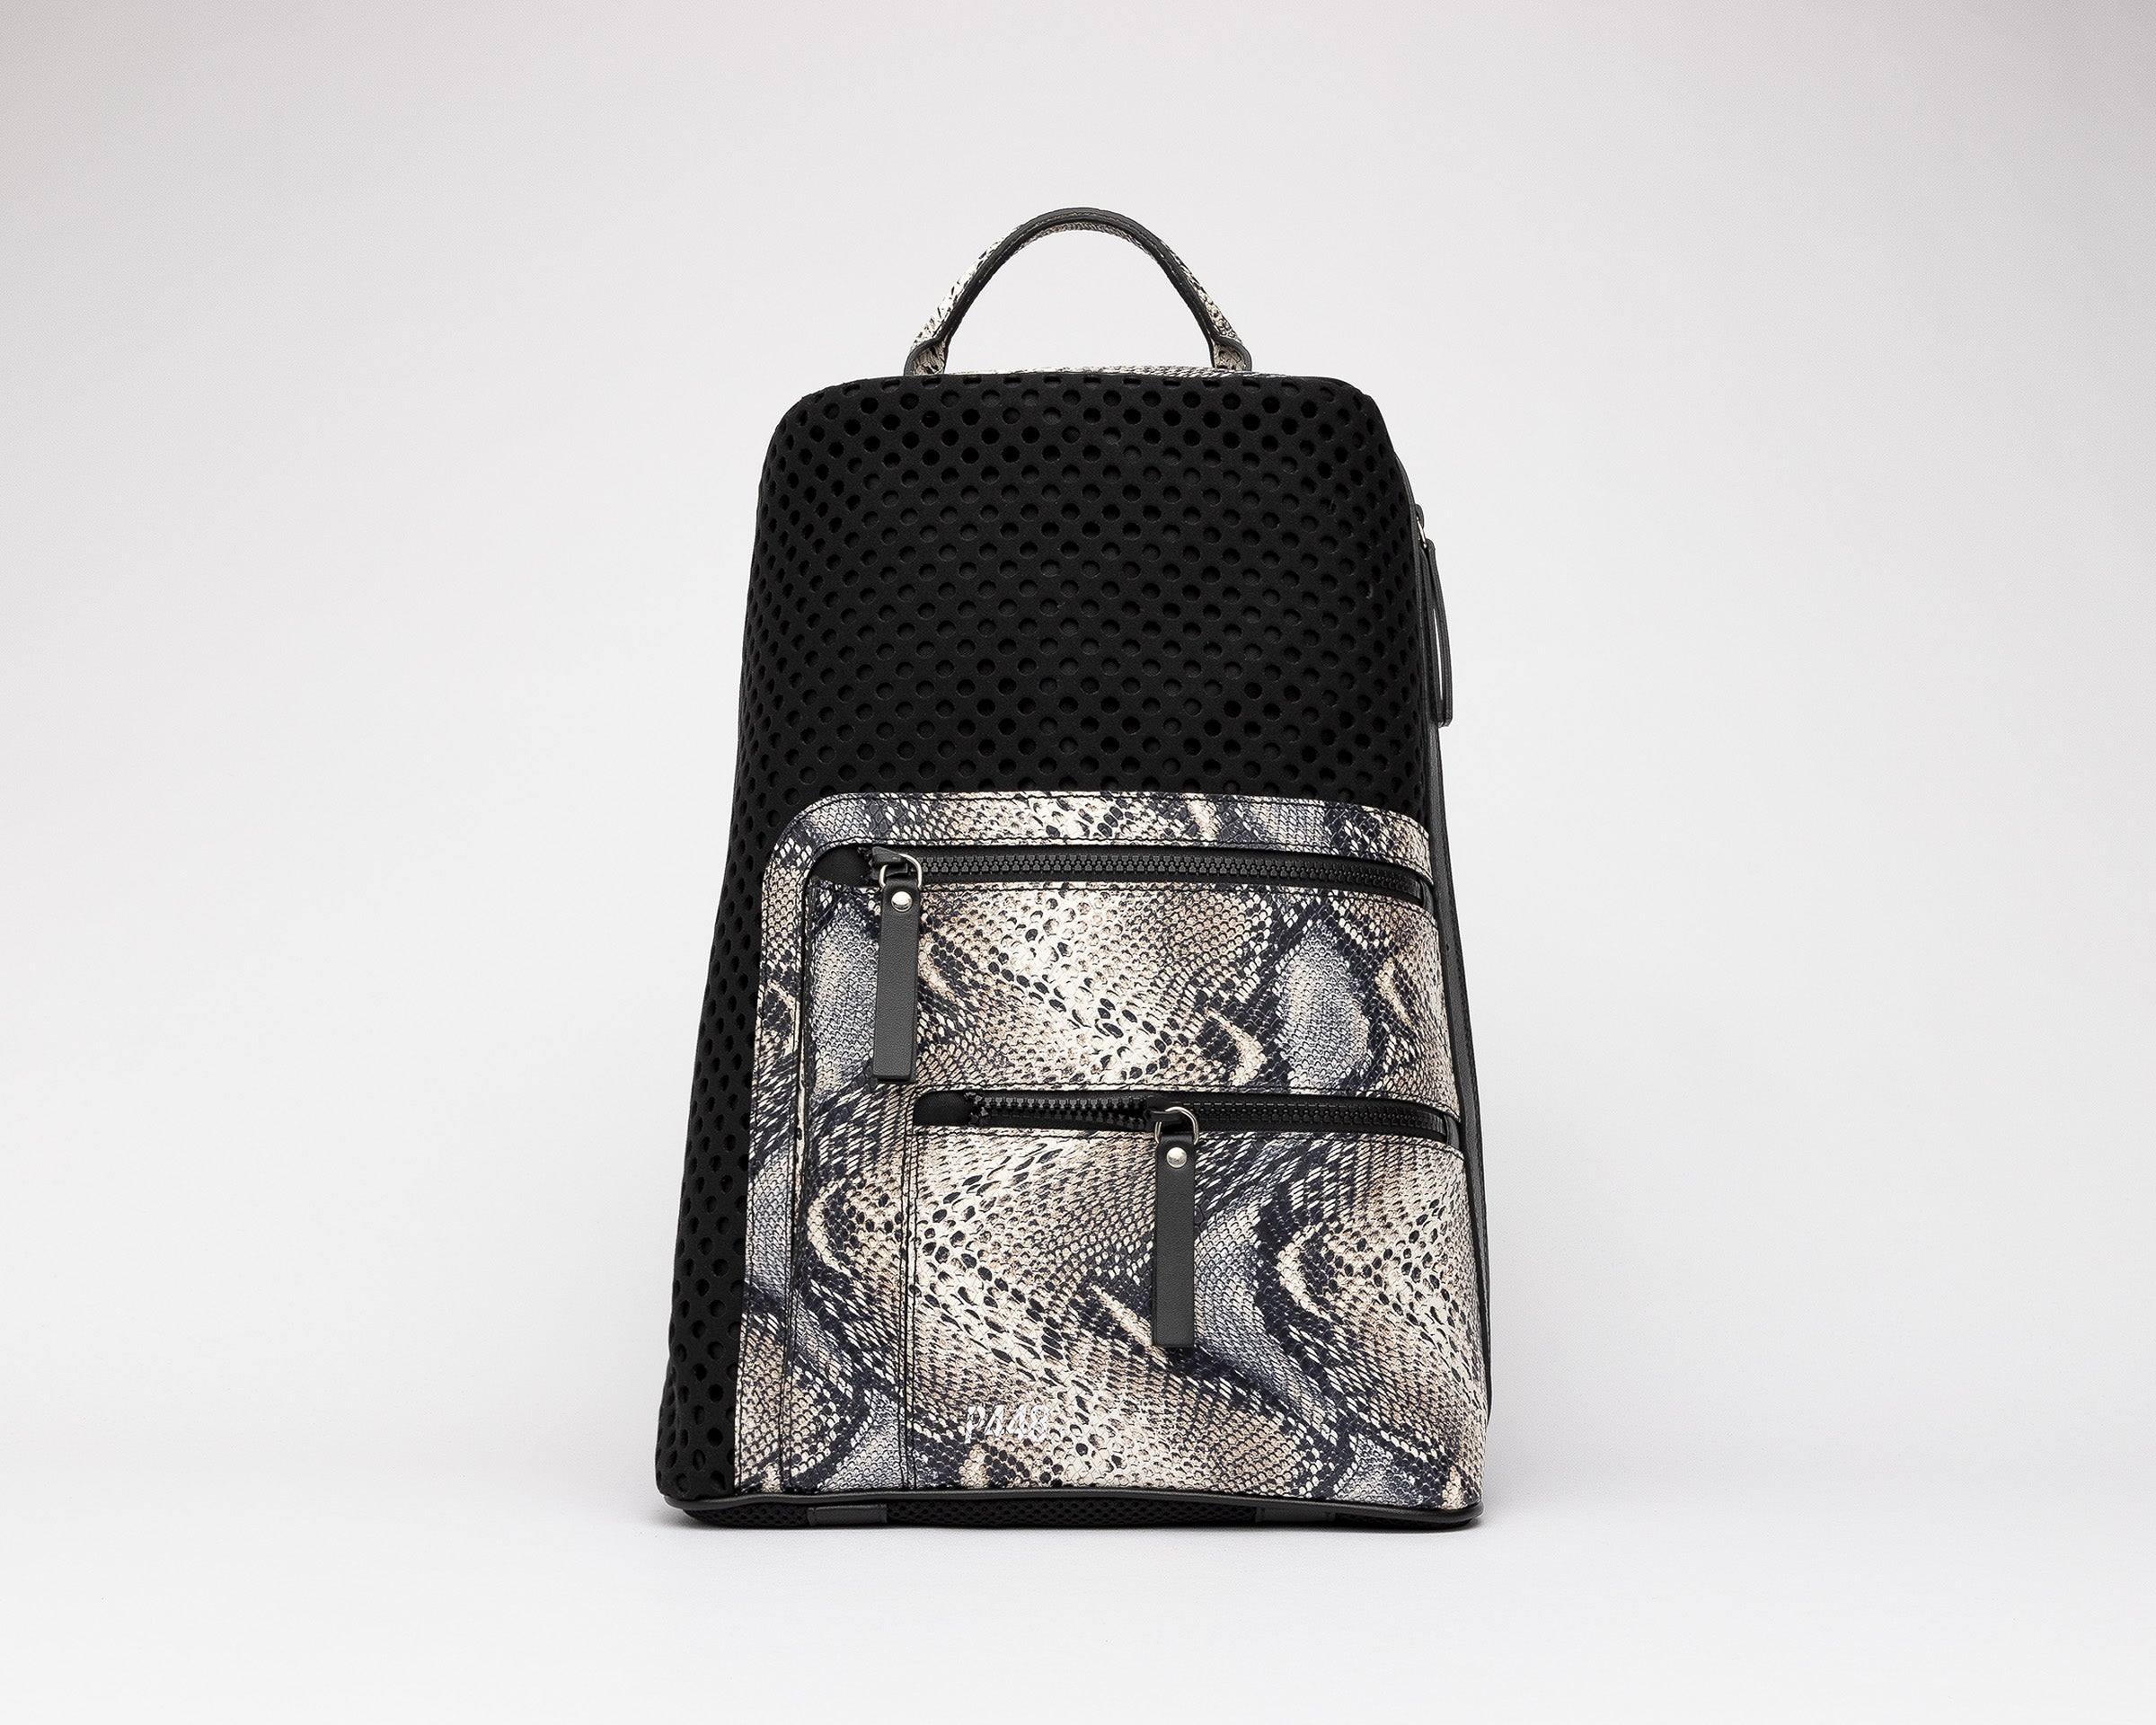 Bill Backpack in Twister Python - Profile